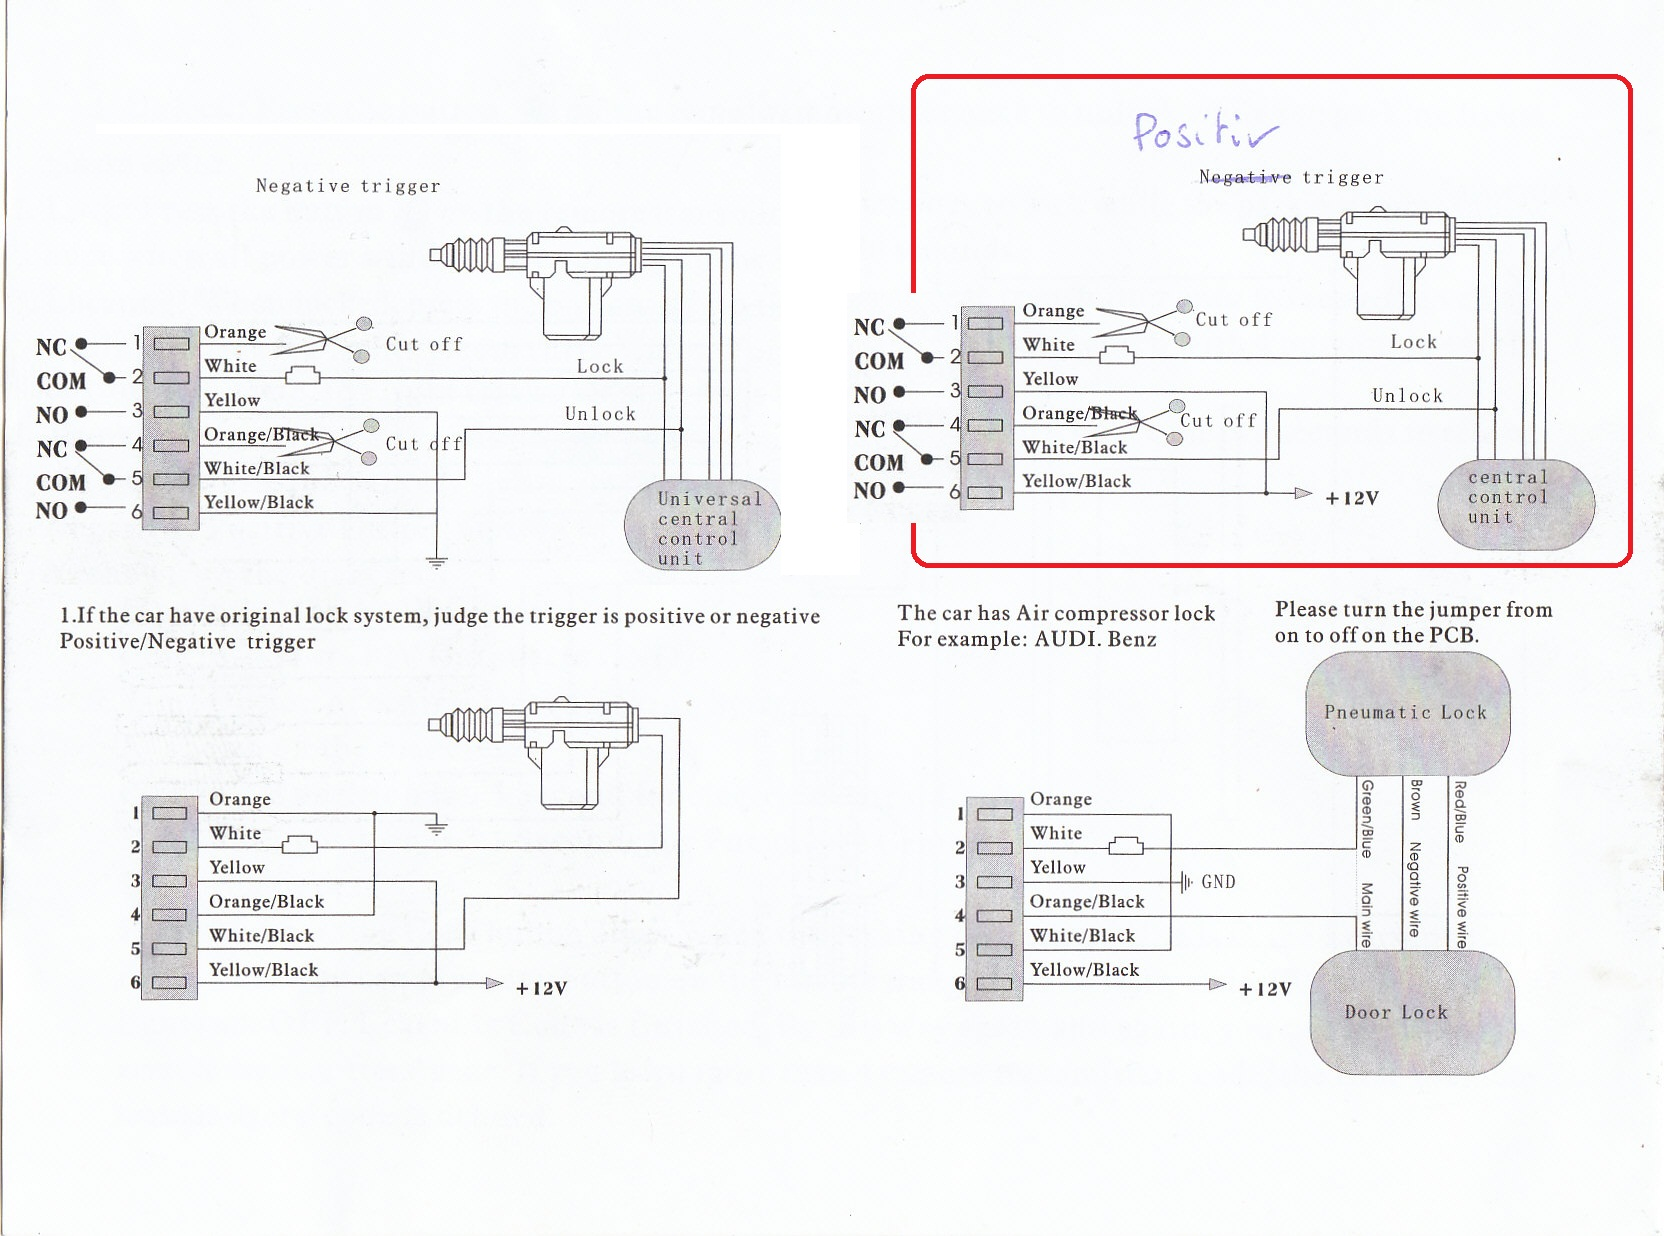 wiring diagram keyless entry system buick 455 firing order on early 928 rennlist porsche discussion